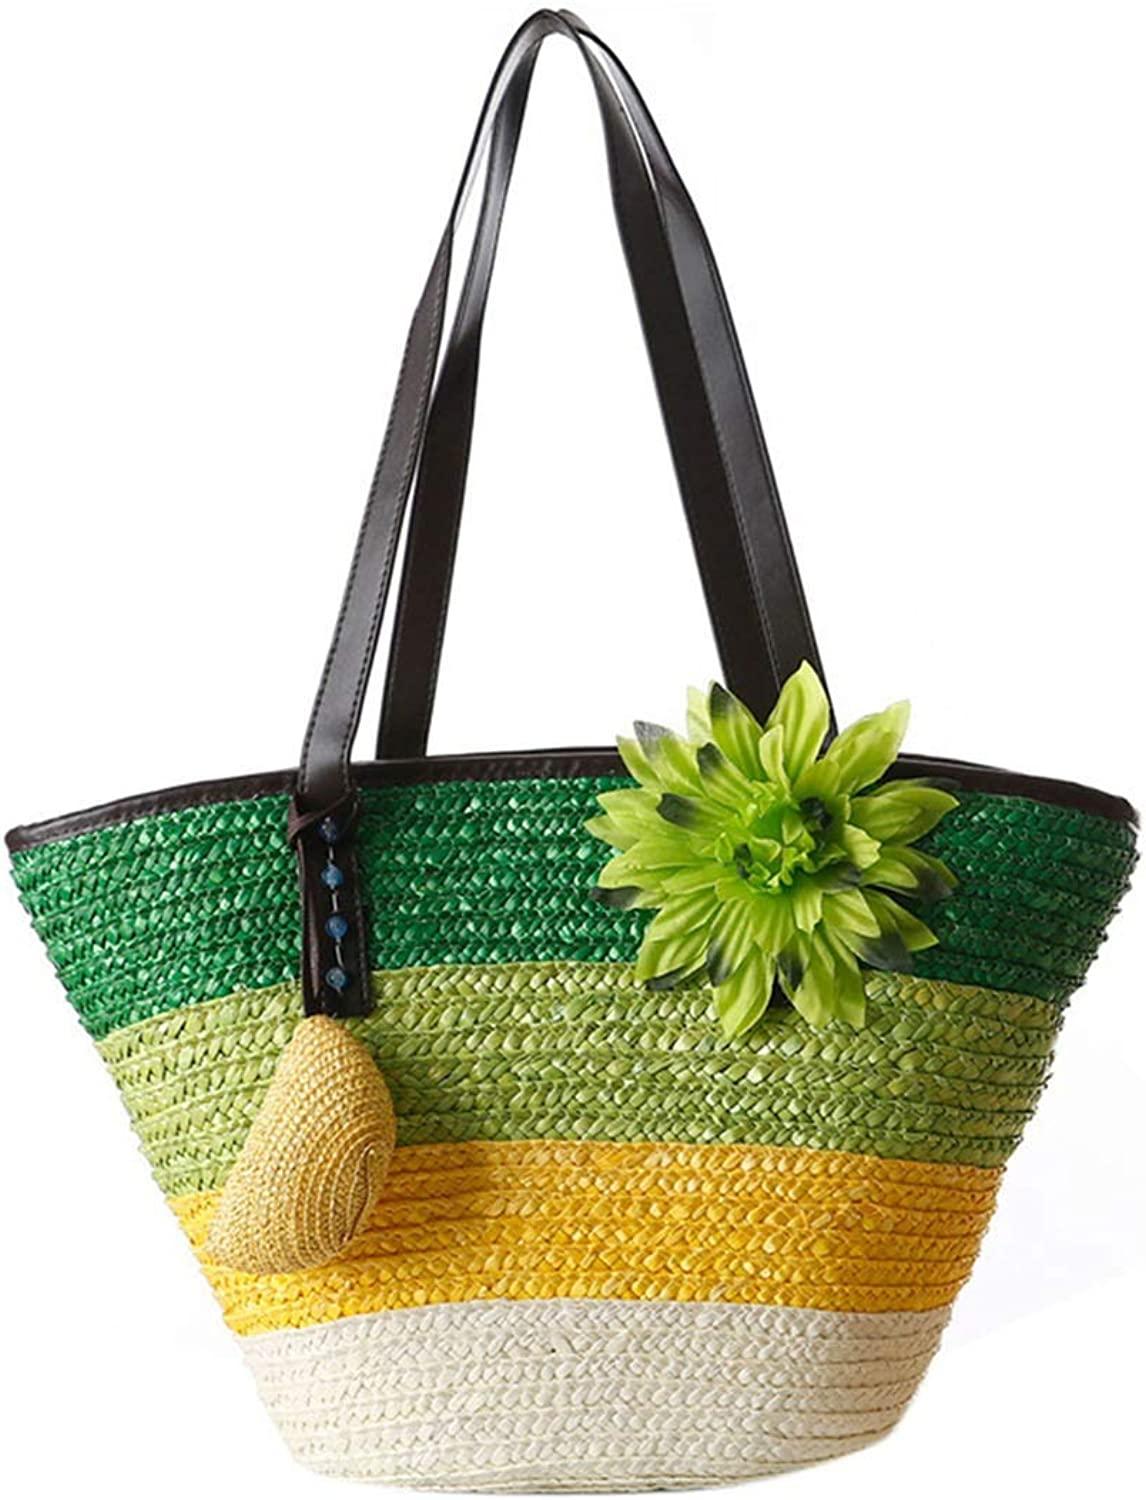 Knitted Straw bag Summer flower Bohemian womens handbags color stripes shoulder bags beach bag big tote